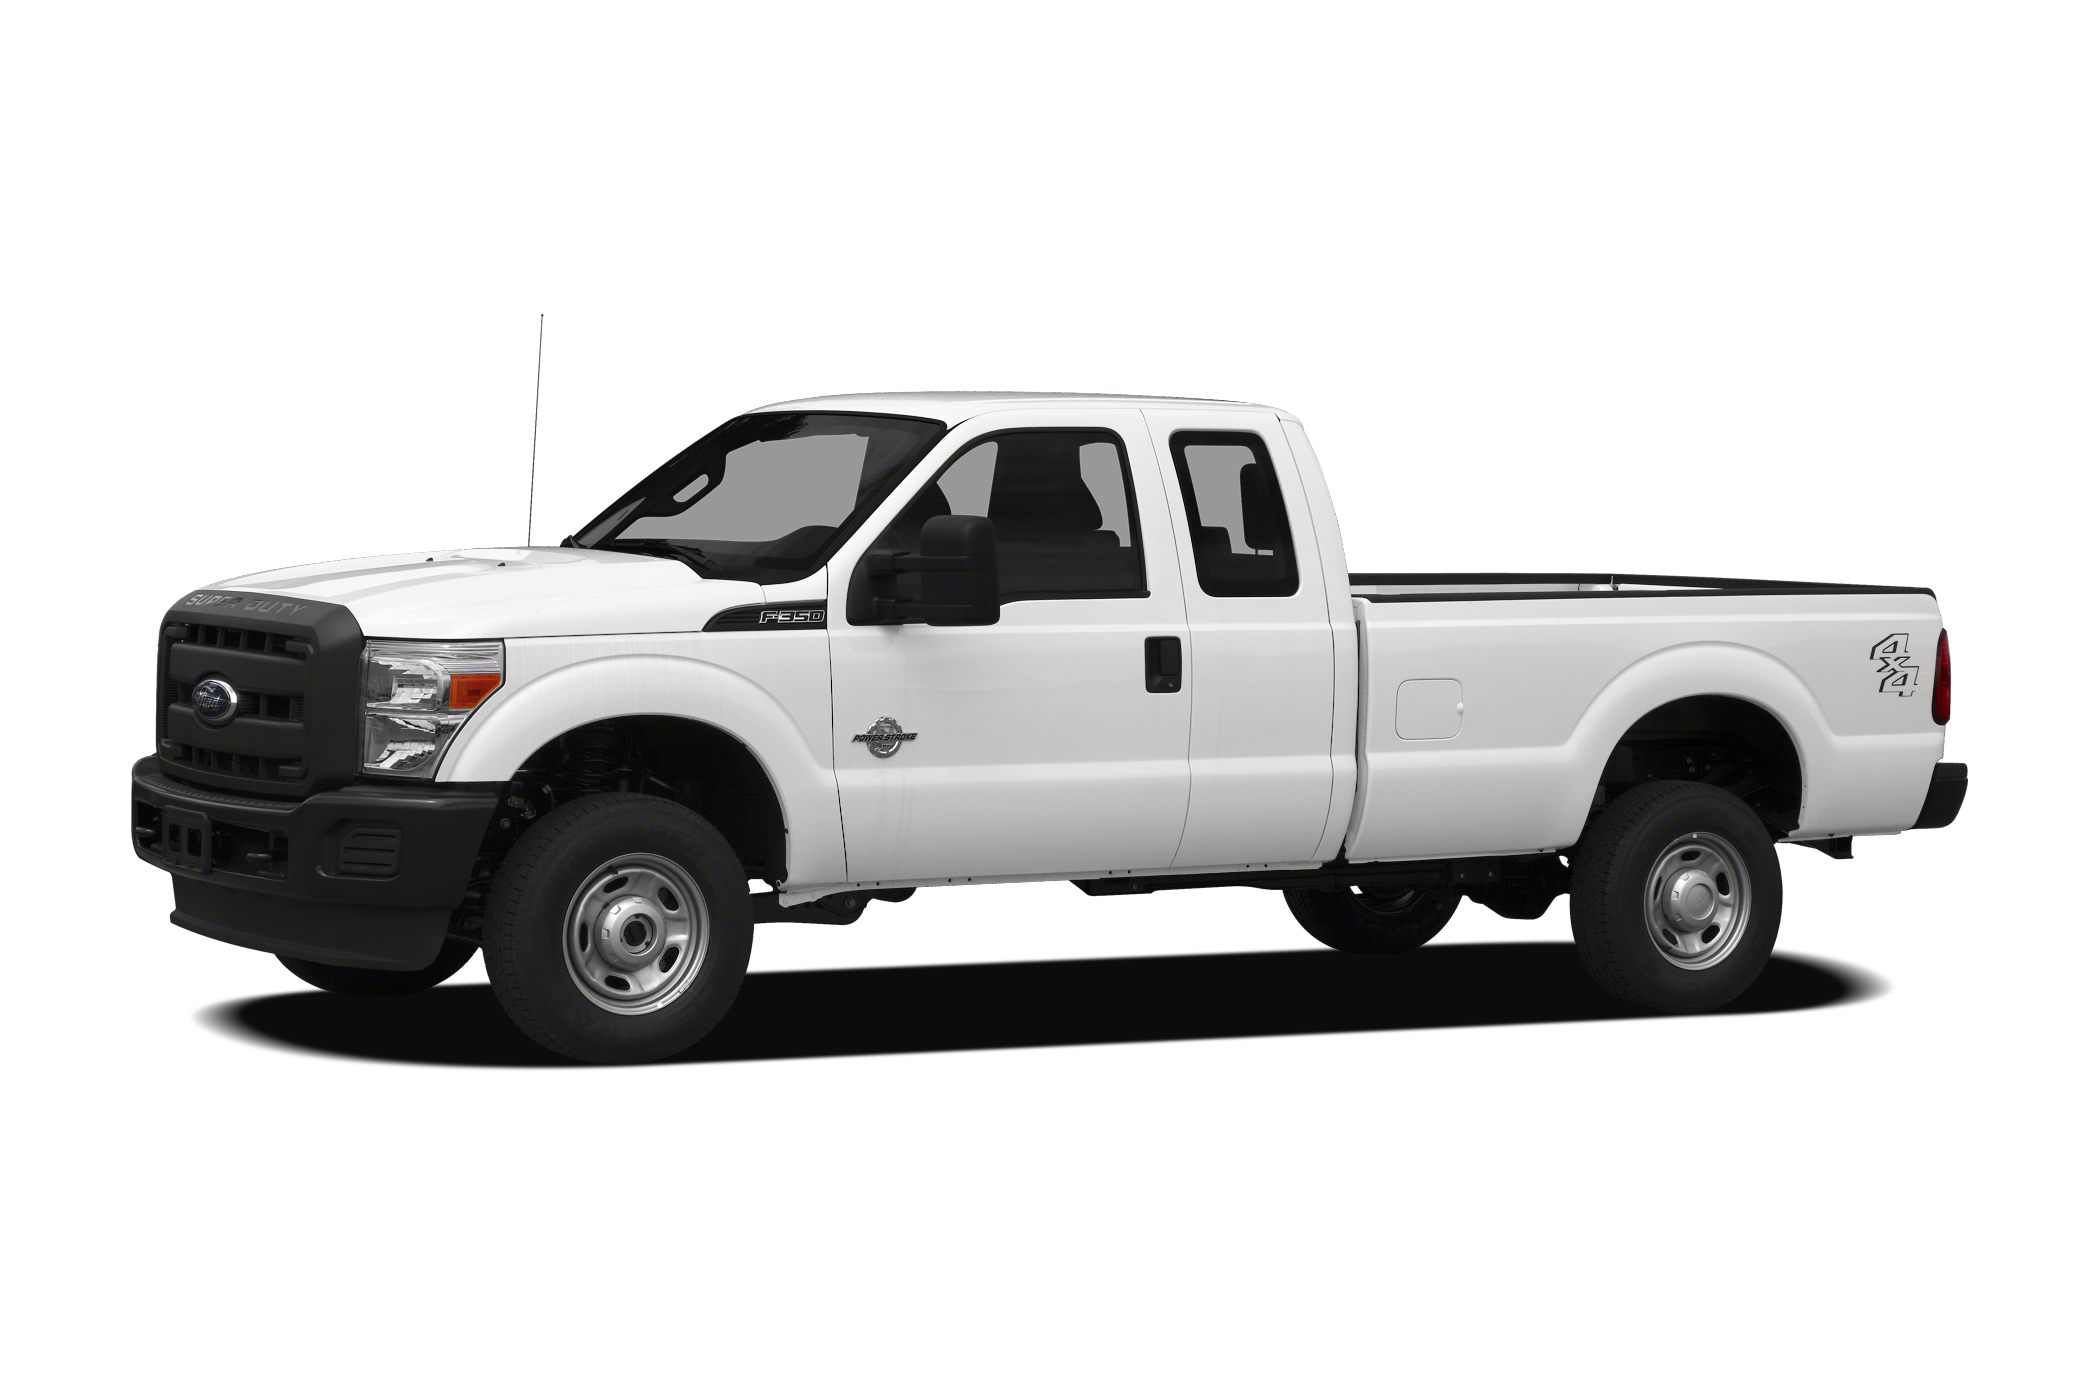 2011 Ford F350 Lariat Crew Cab Pickup for sale in Mendham for $34,892 with 127,753 miles.